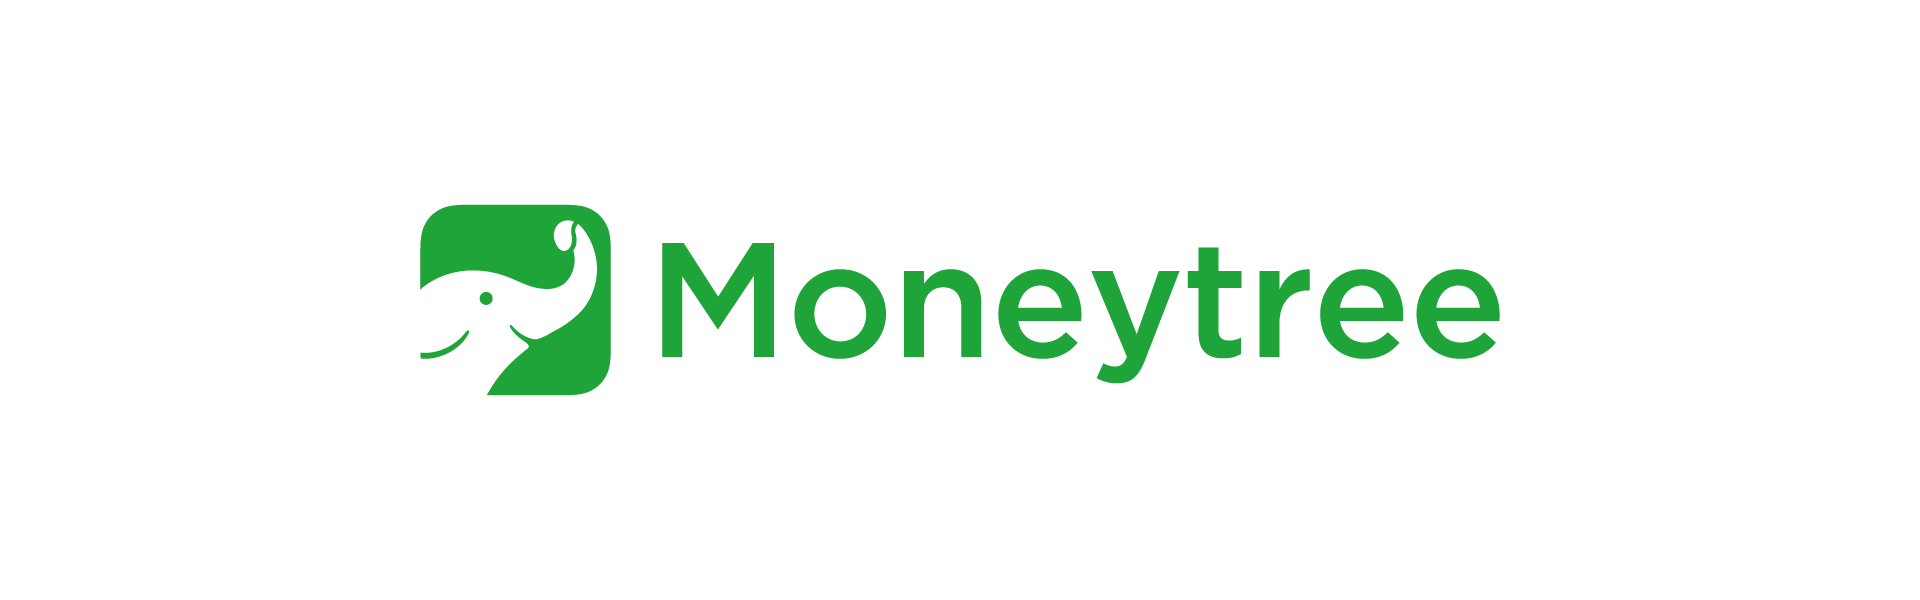 PressRelease MoneytreeLogo Final